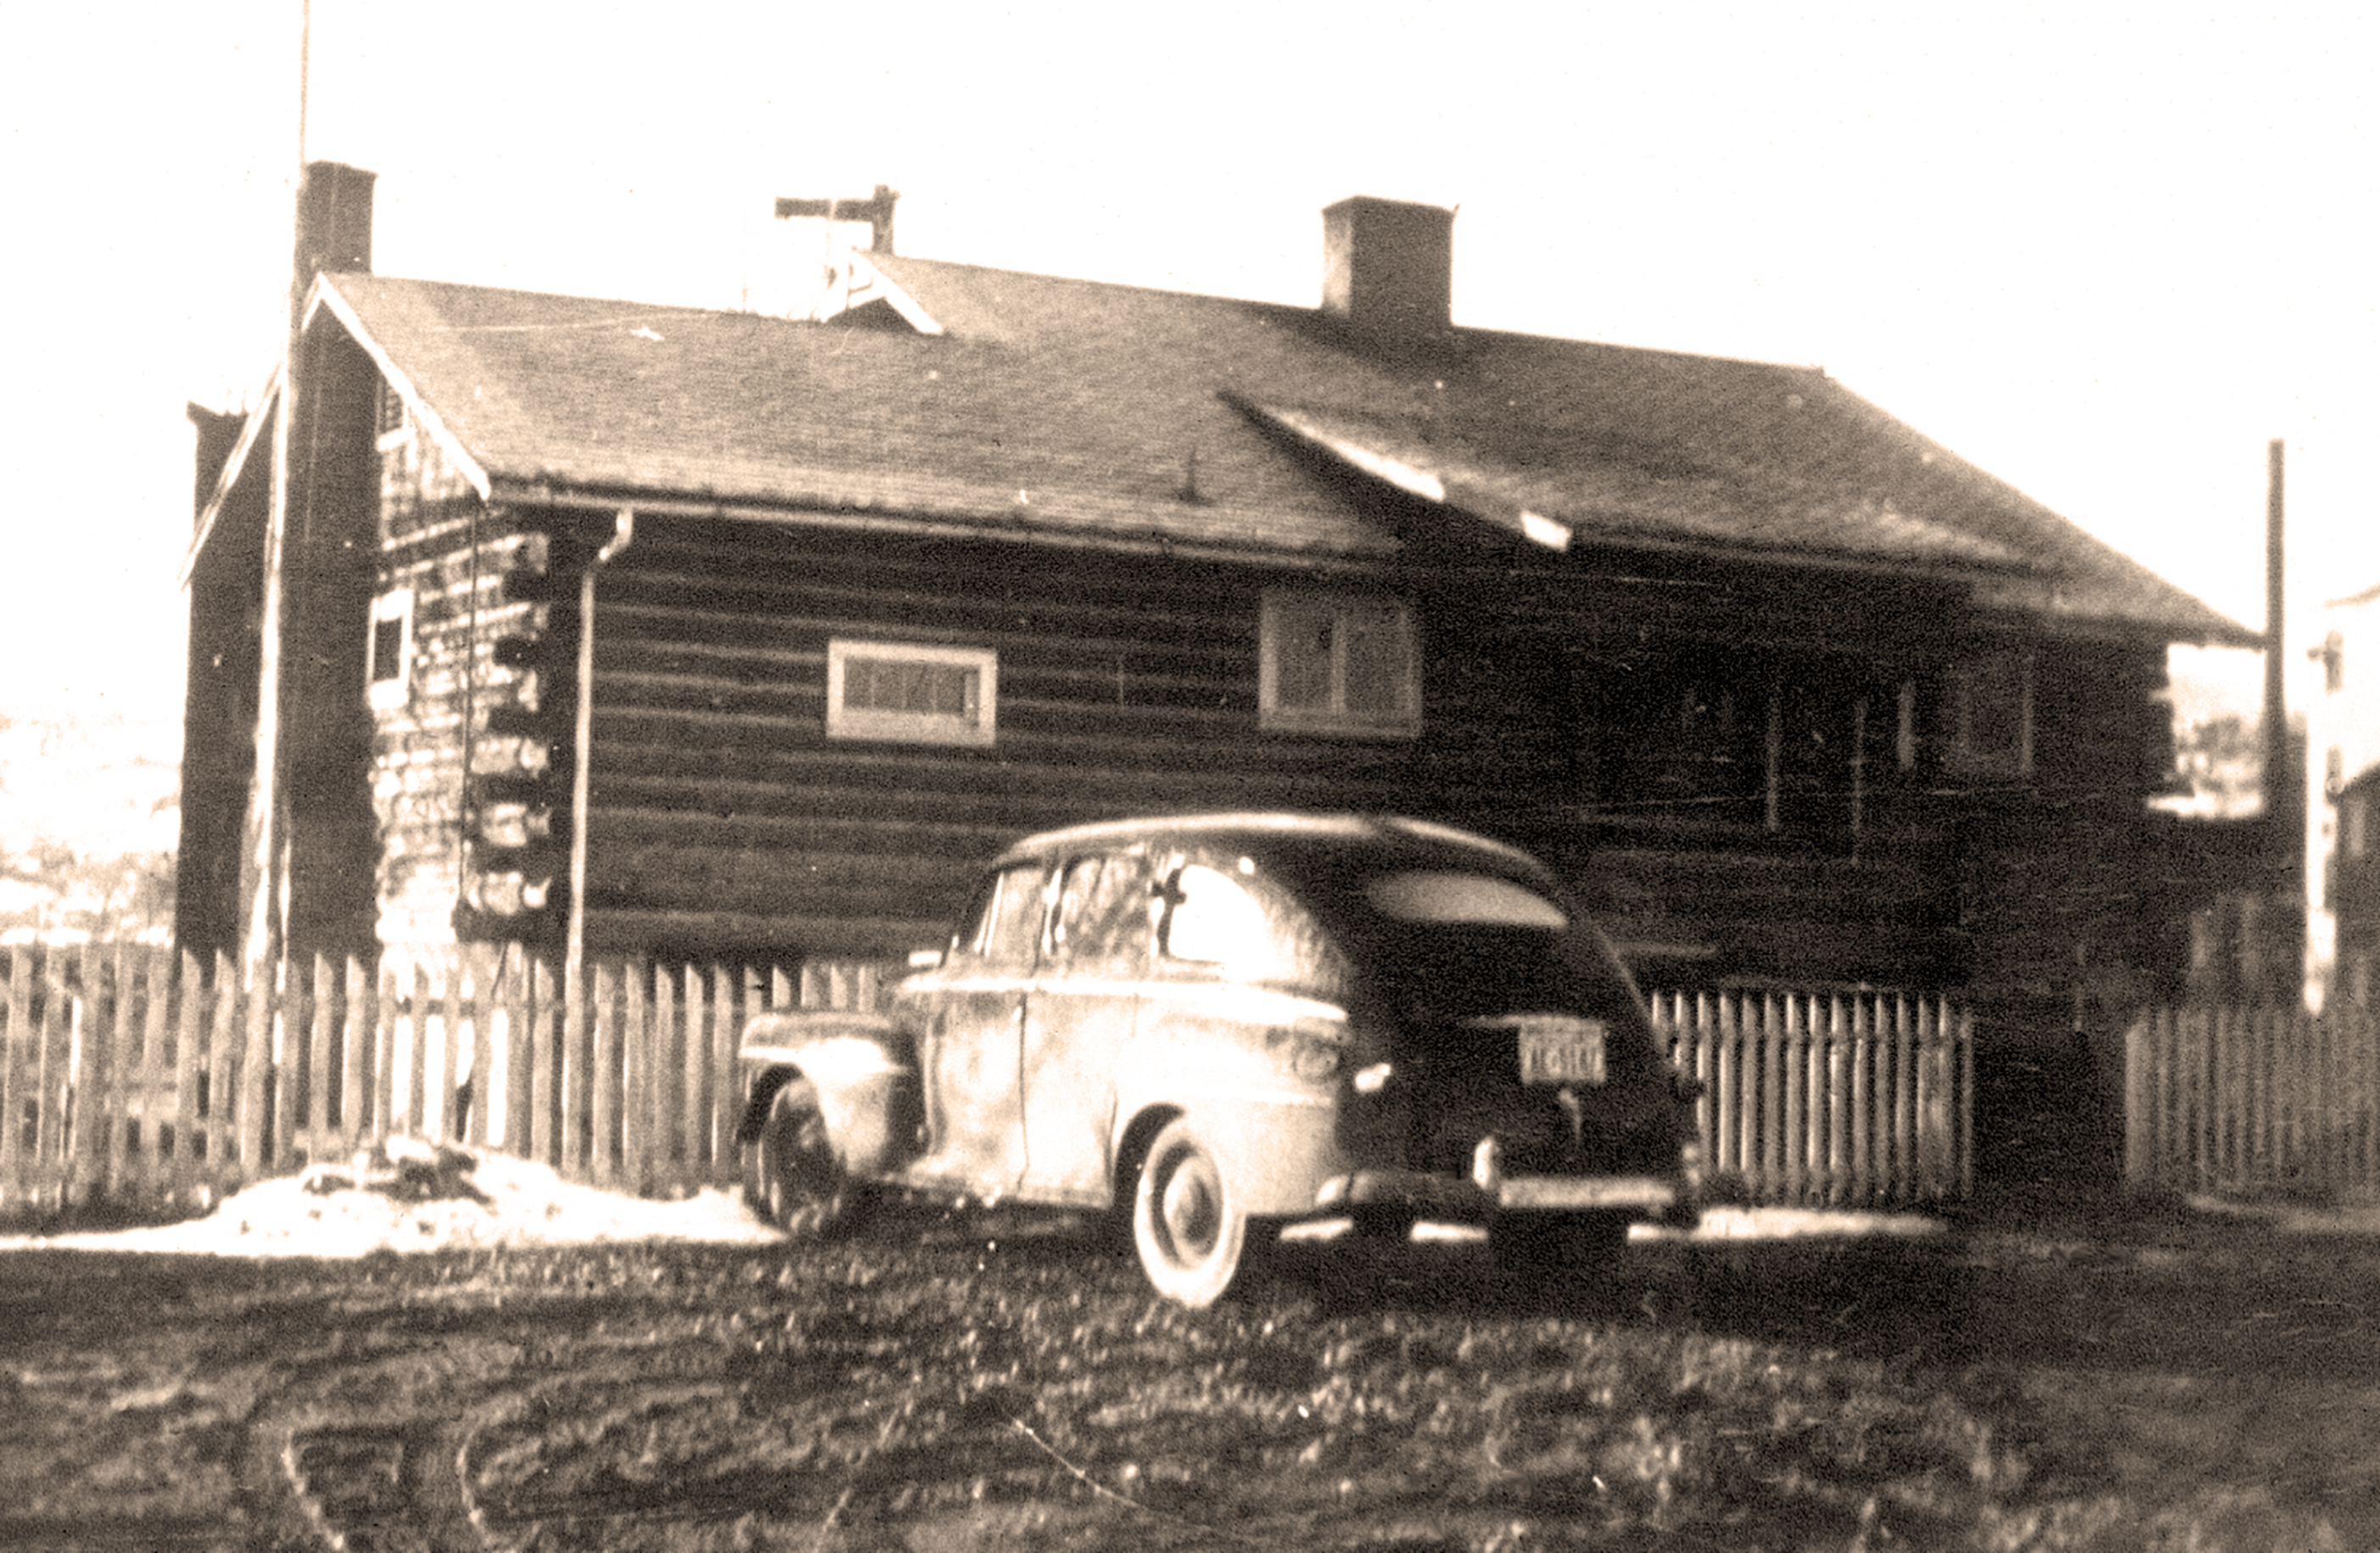 "<p>A log cabin that was on the site <span style=""color: rgb(64, 69, 64);"">where the U.S. Government milled for uranium in Grand Junction</span> in 1943 will now be turned into an interpretive center to put a public spotlight on the top-secret mill.</p>"